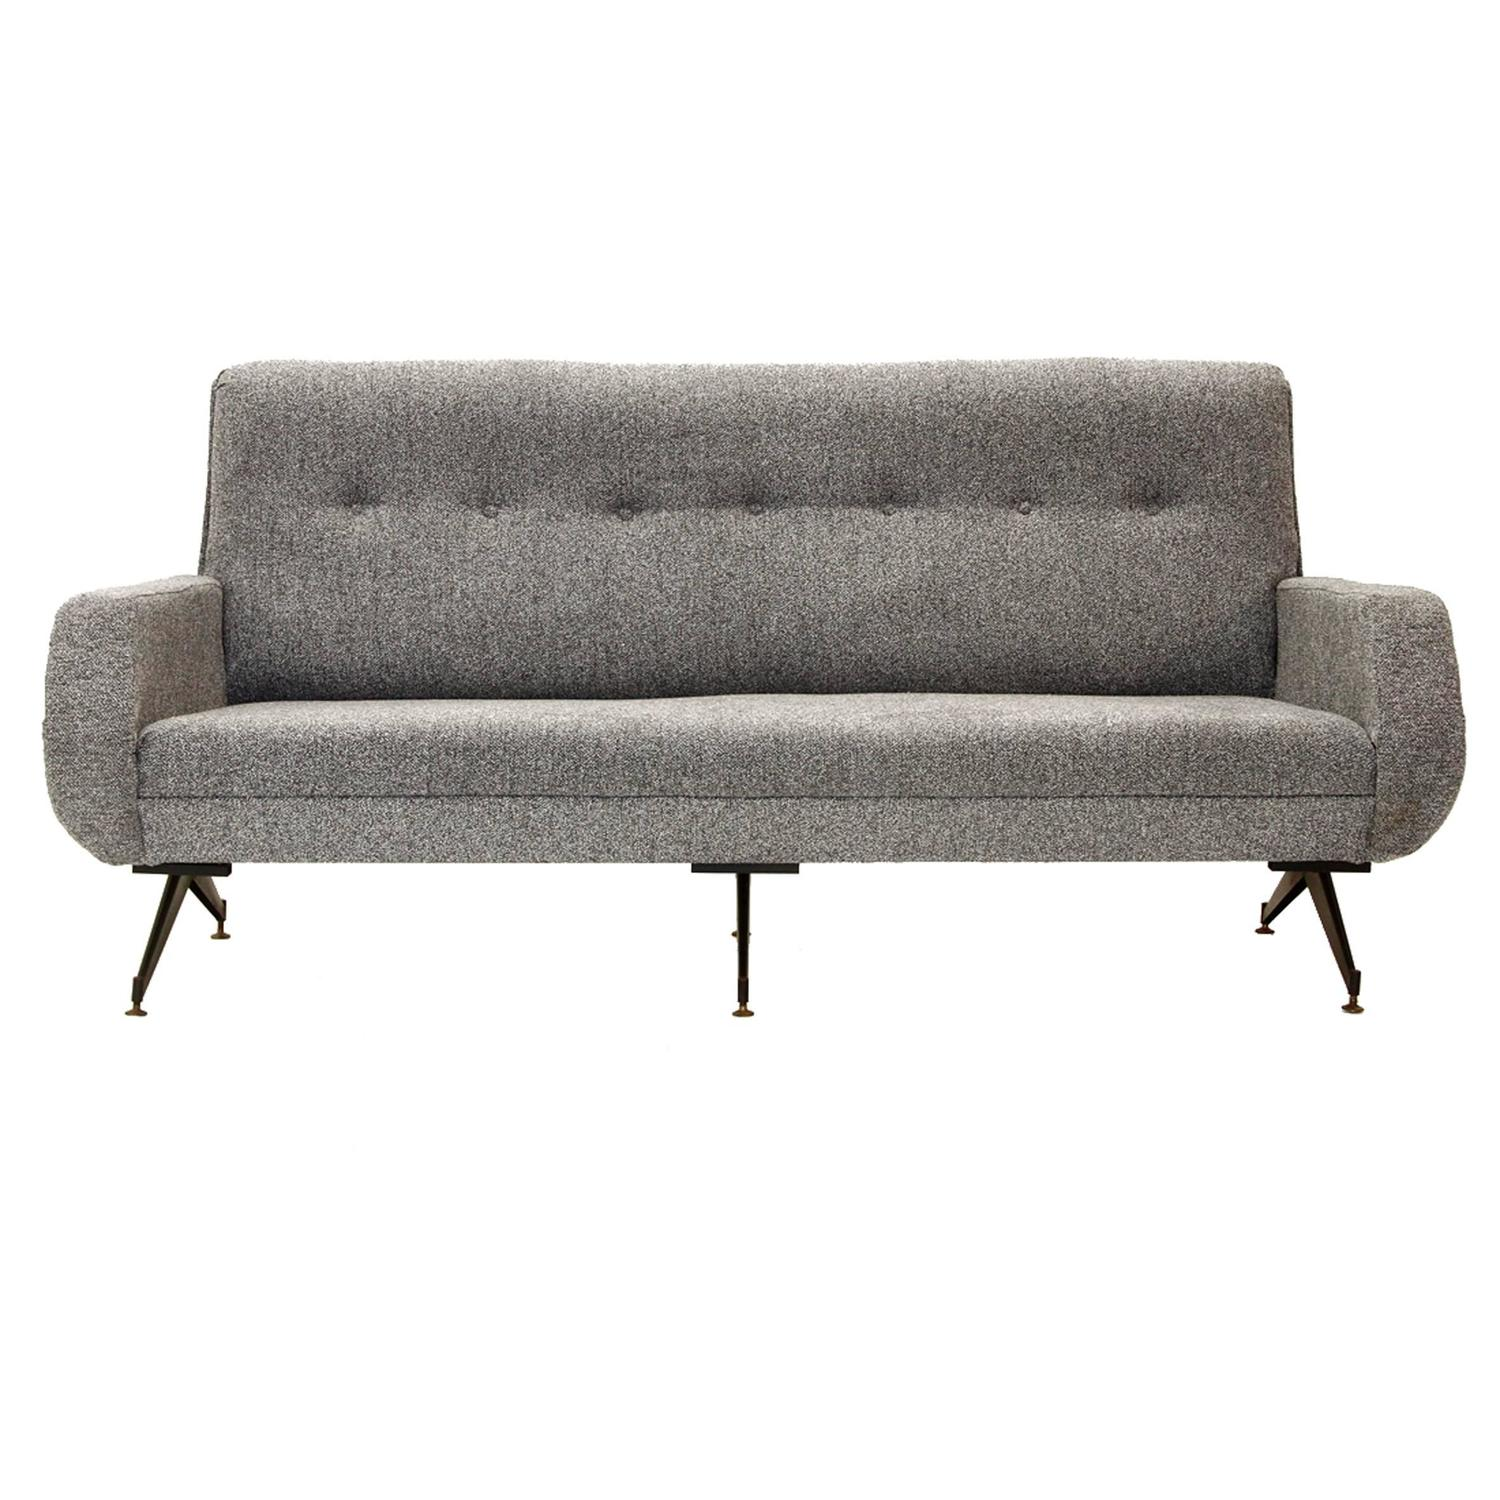 Gray sofas for sale custom rolled back sofa in grey for Gray sofas for sale